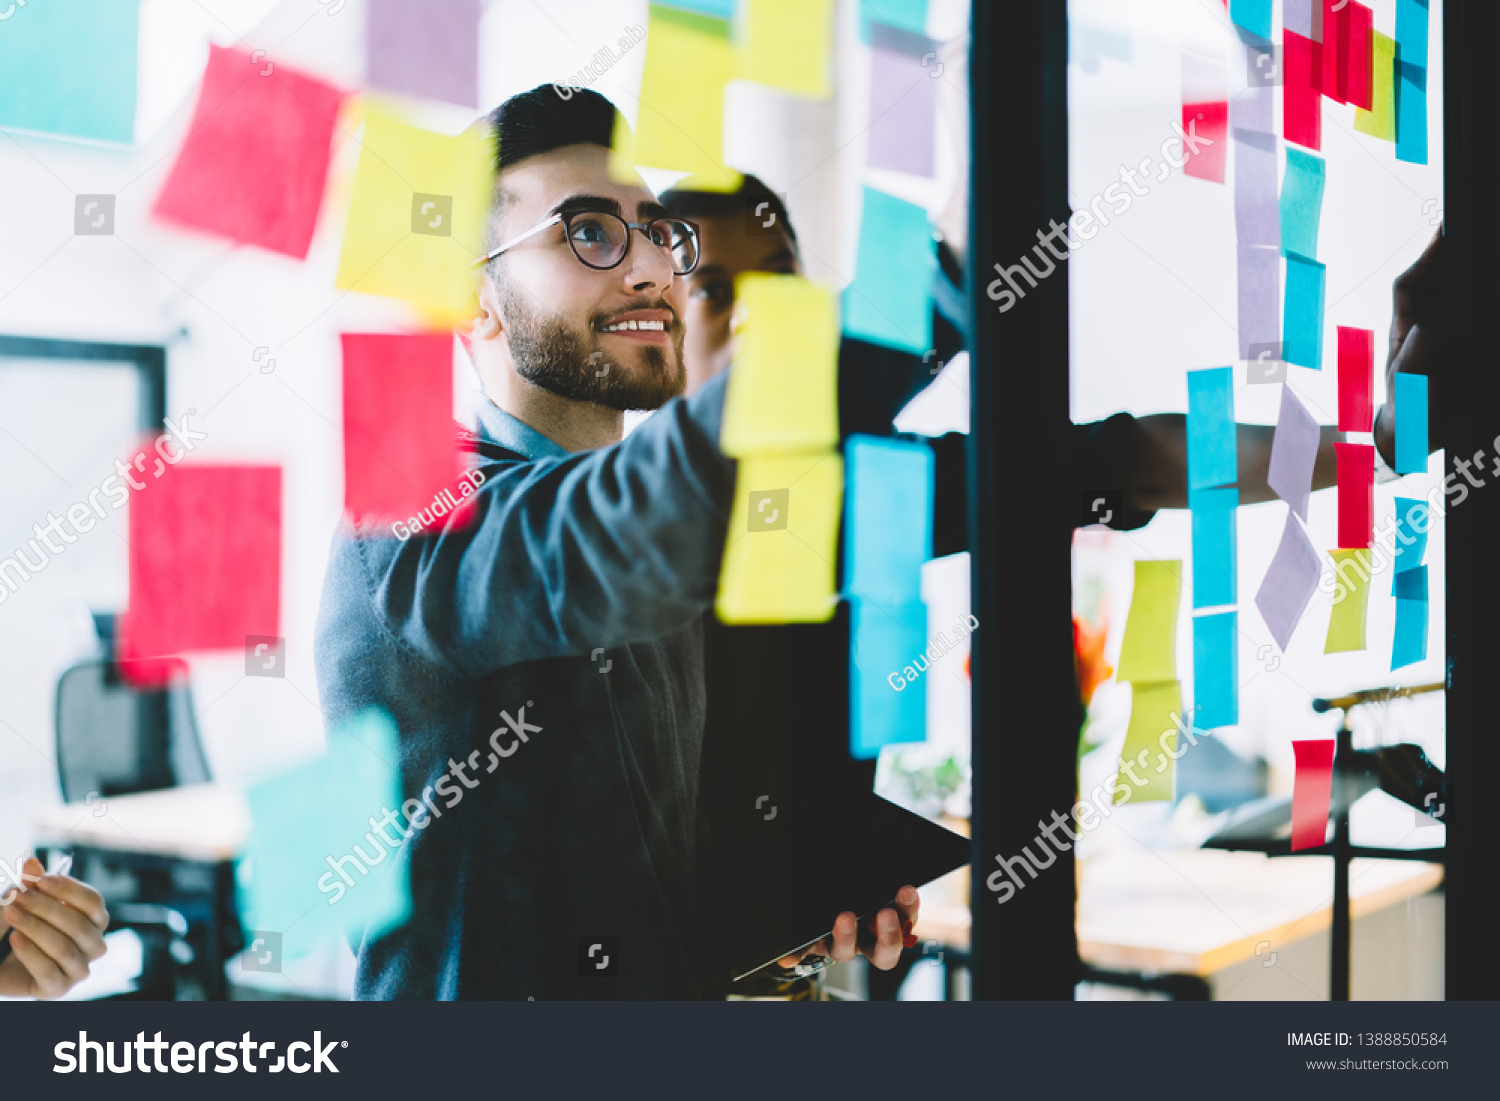 Positive man in optical spectacles with cute smile on face making notes on paper sticks during collaboration with colleagues, happy crew of professional people searching ideas for startup project #1388850584